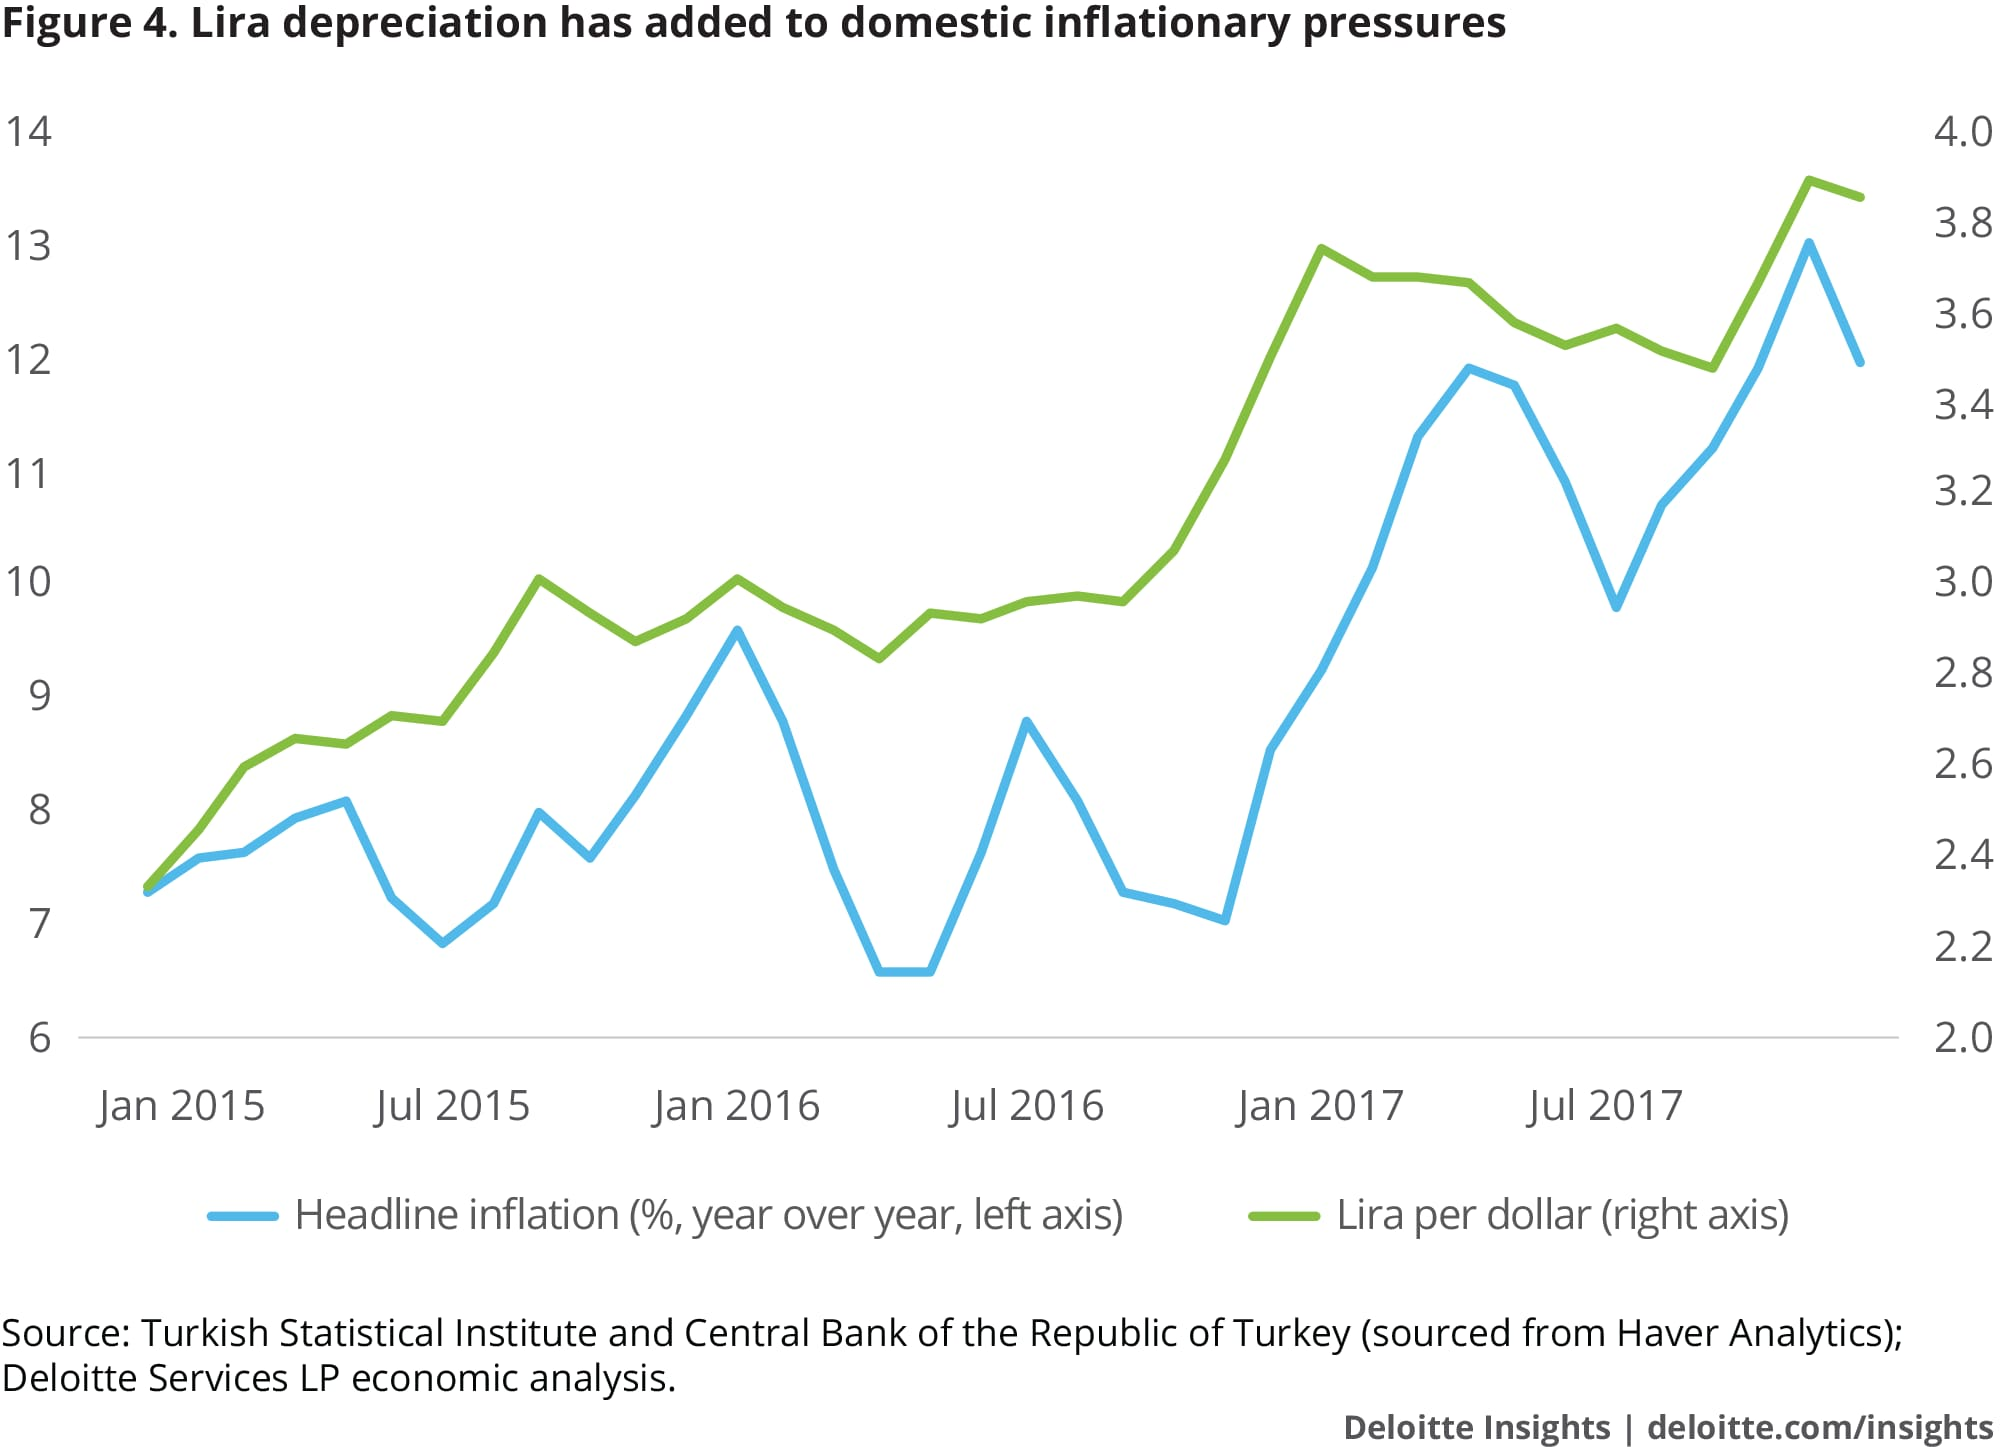 Lira depreciation has added to domestic inflationary pressures